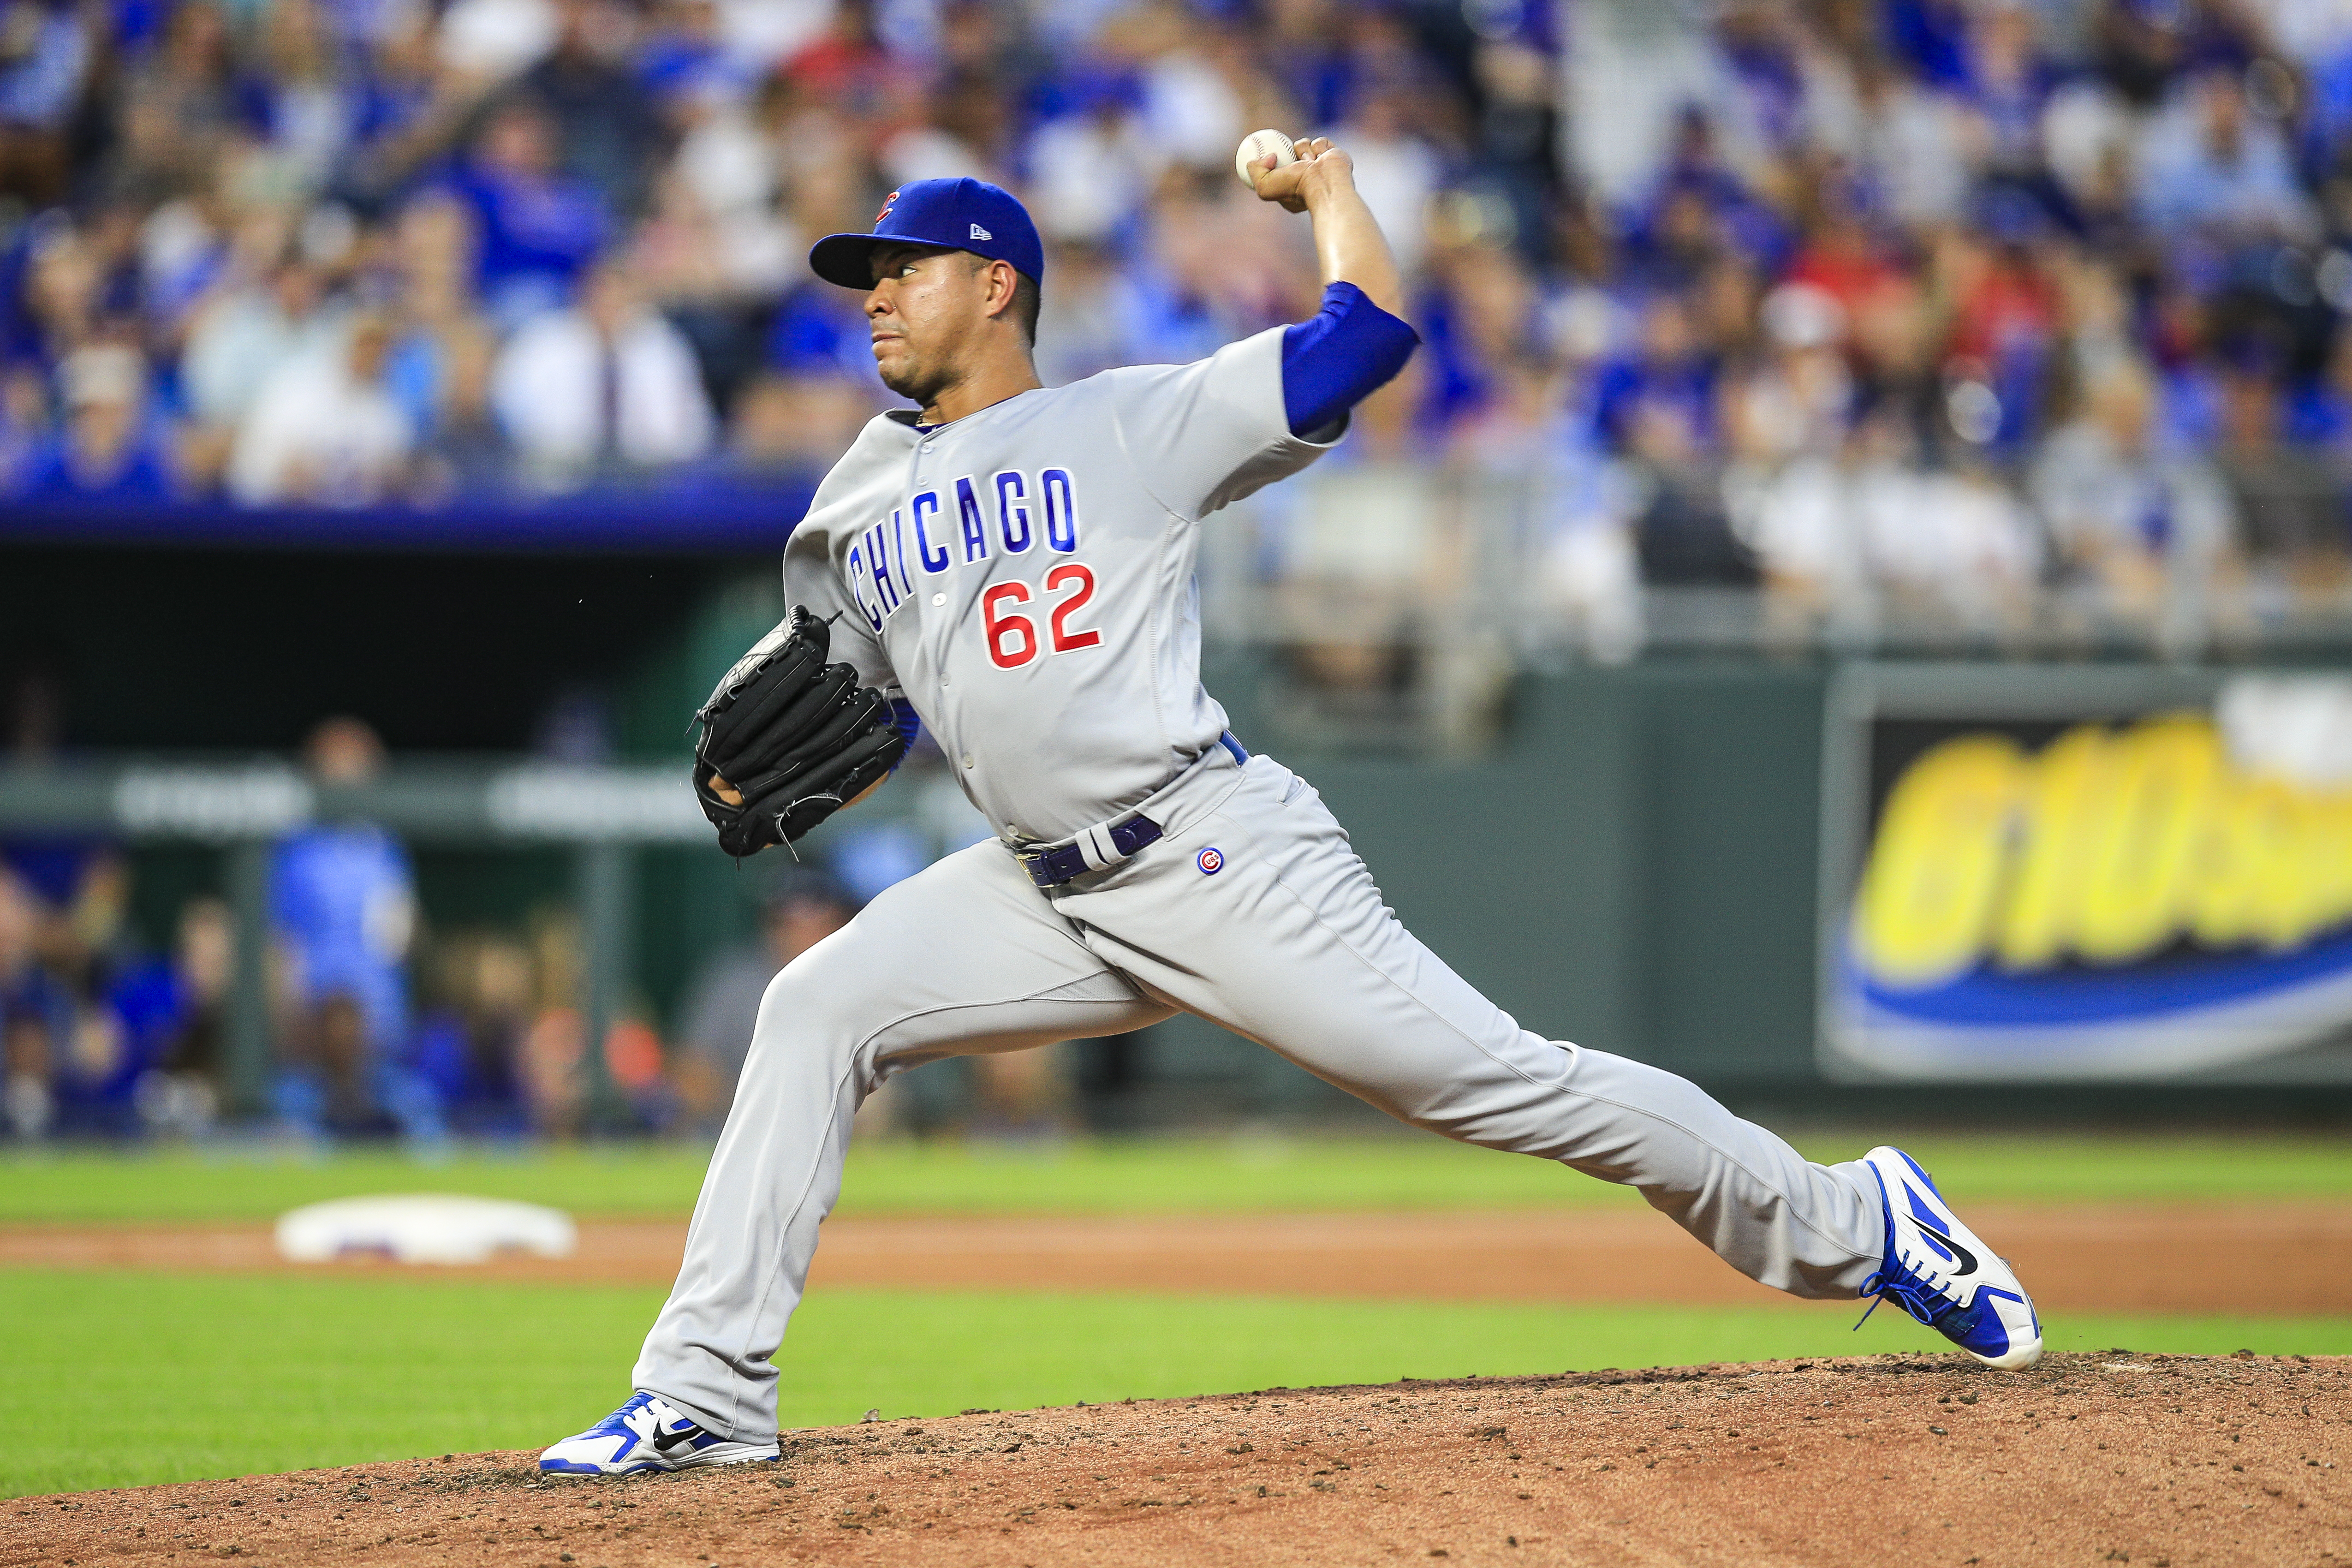 José Quintana faces a key game for the divisional pennant